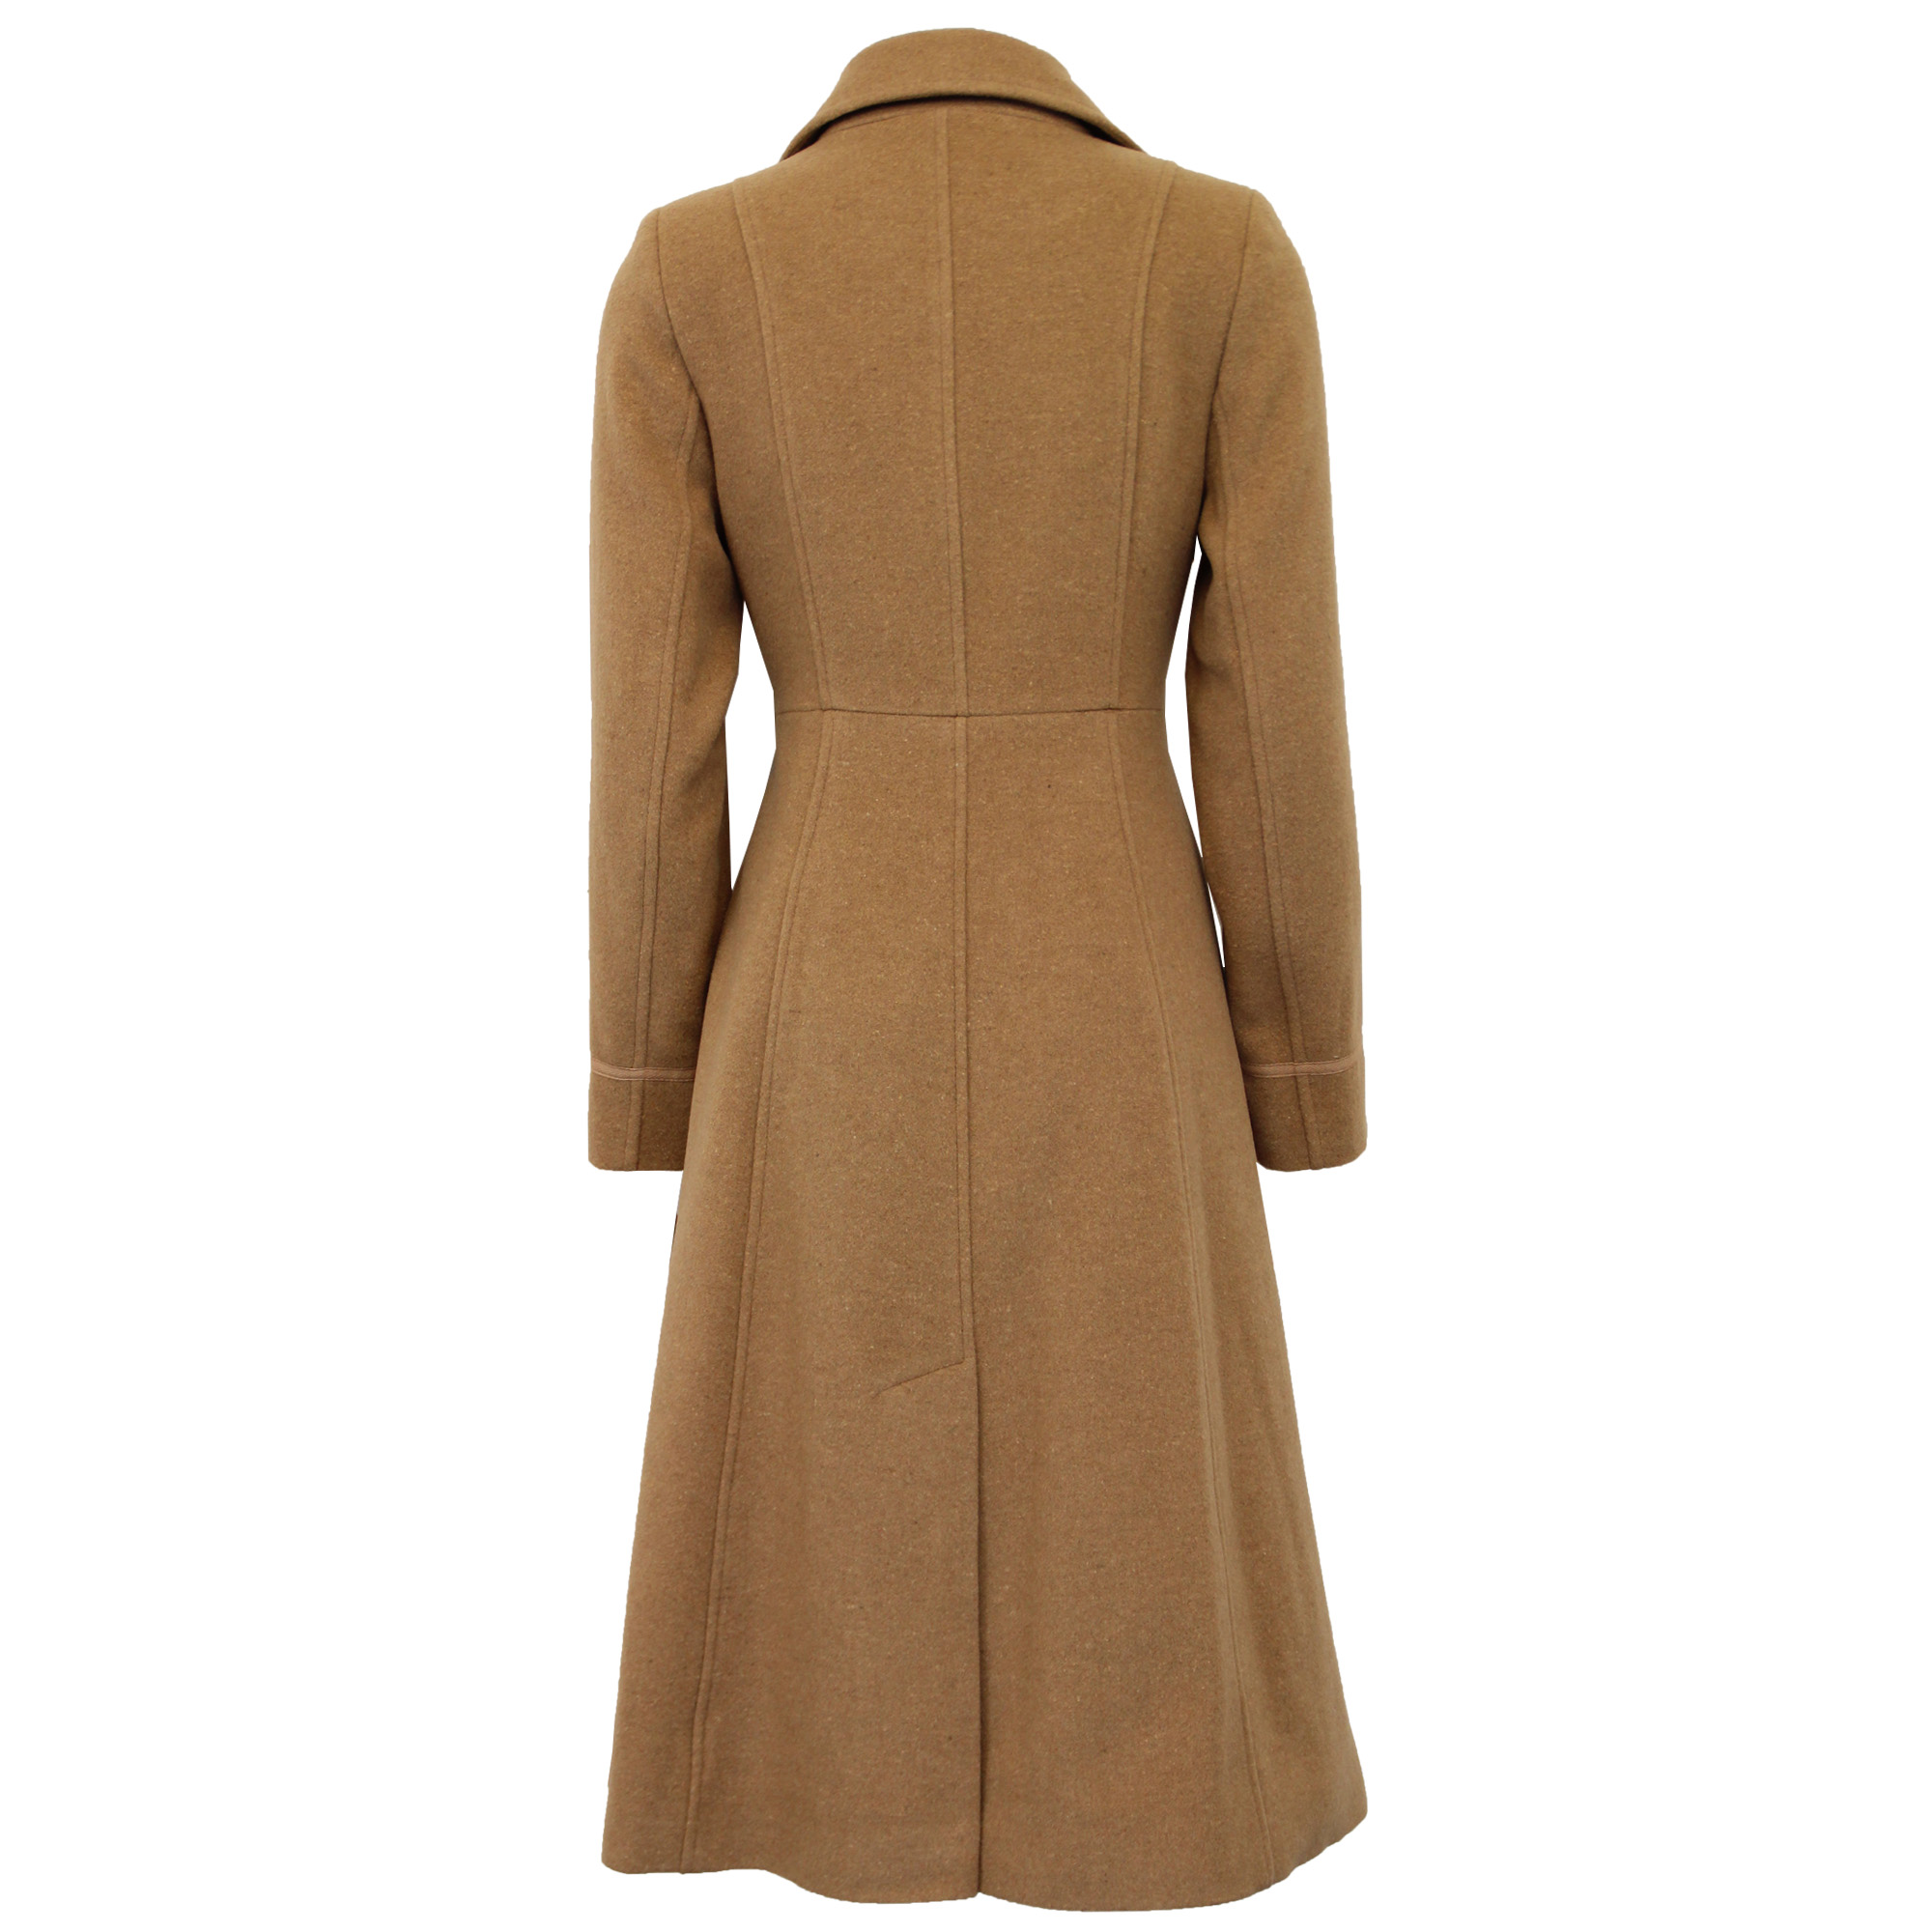 thumbnail 3 - Ladies-Wool-Cashmere-Coat-Womens-Jacket-Outerwear-Trench-Overcoat-Winter-Warm